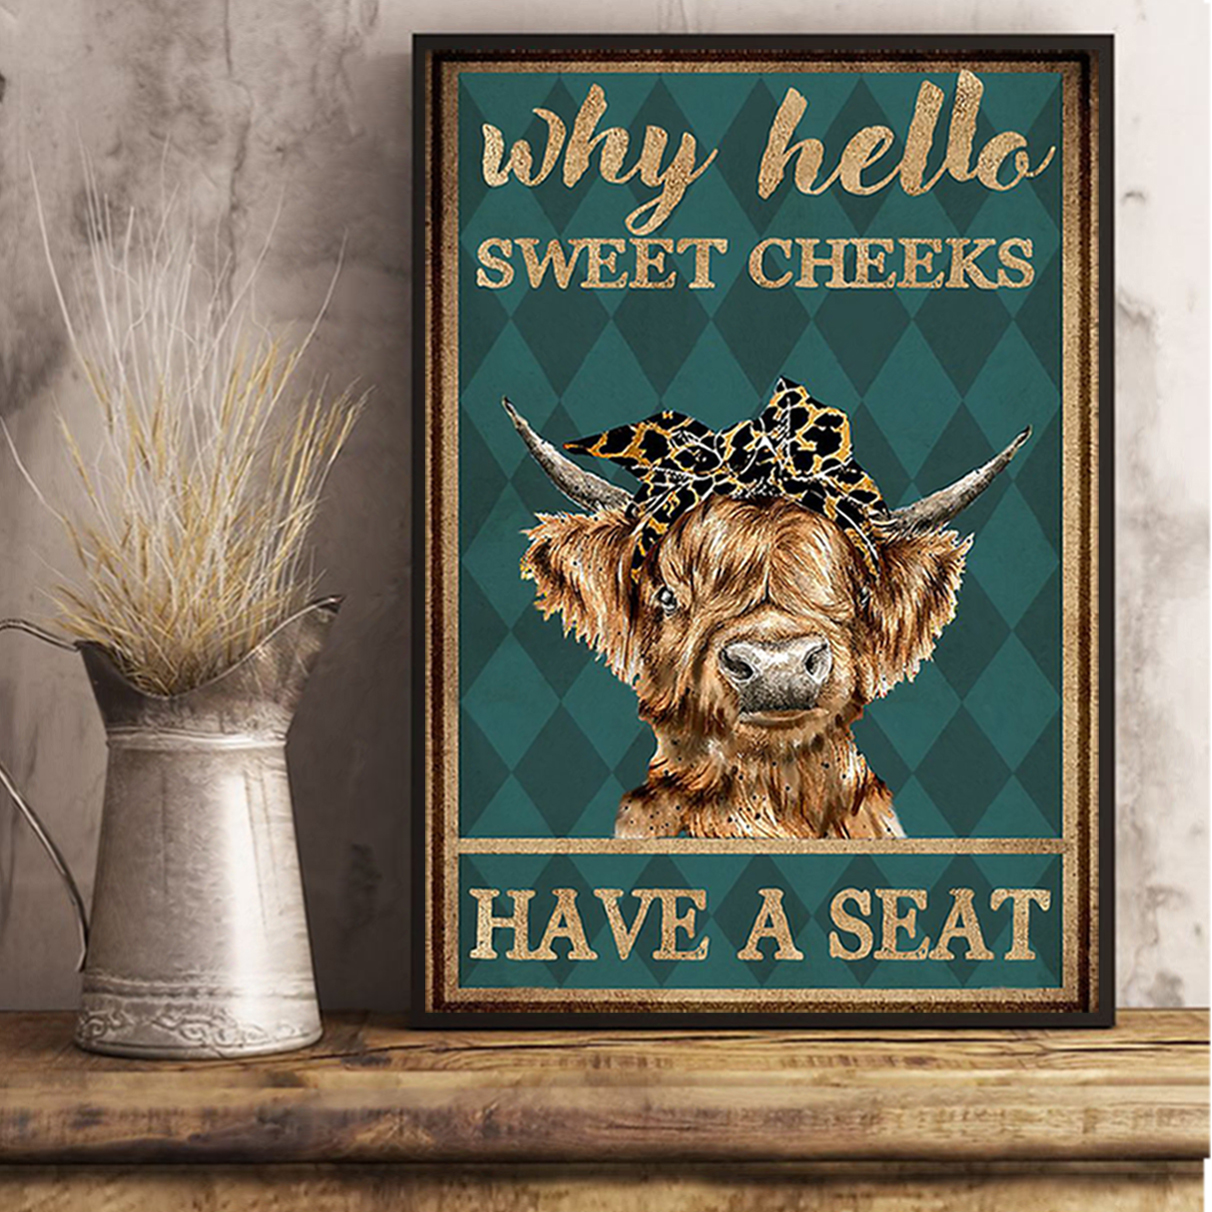 Cow highland cattle why hello sweet cheeks have a seat poster A2